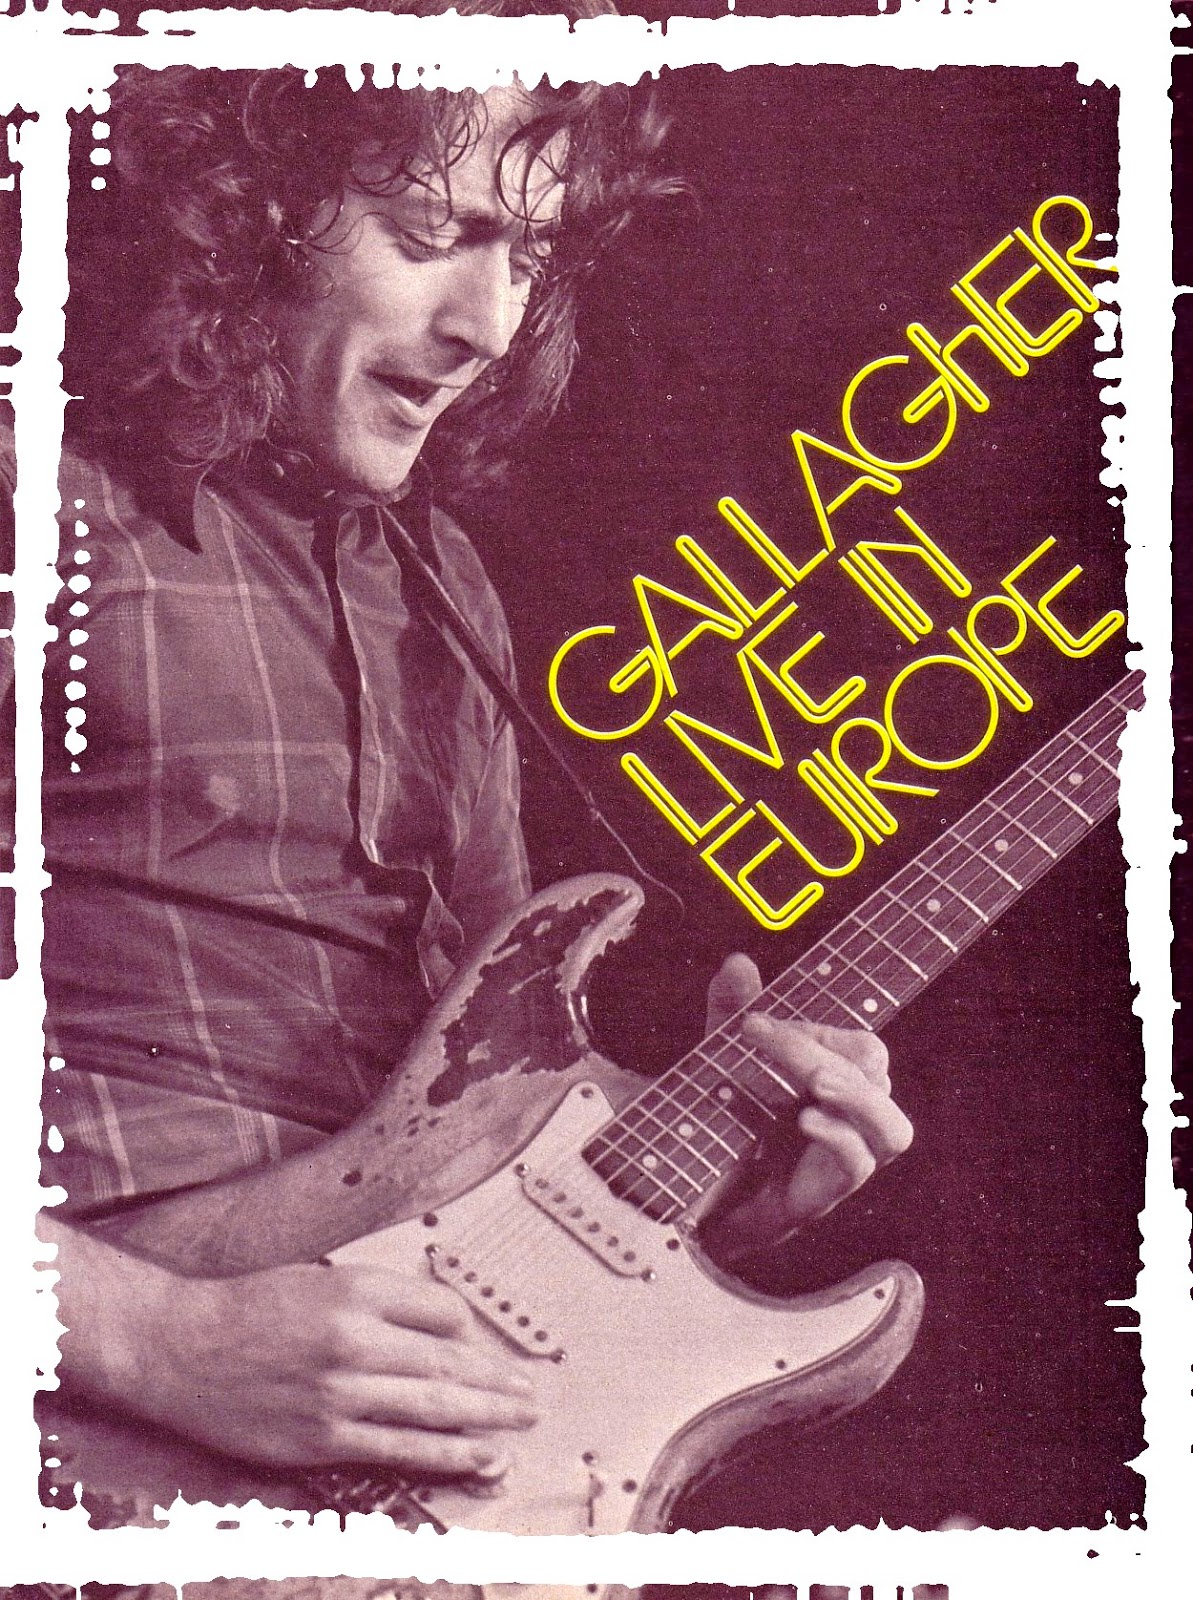 Live In Europe (1972) - Page 2 Rory+Gallagher+SB+3699